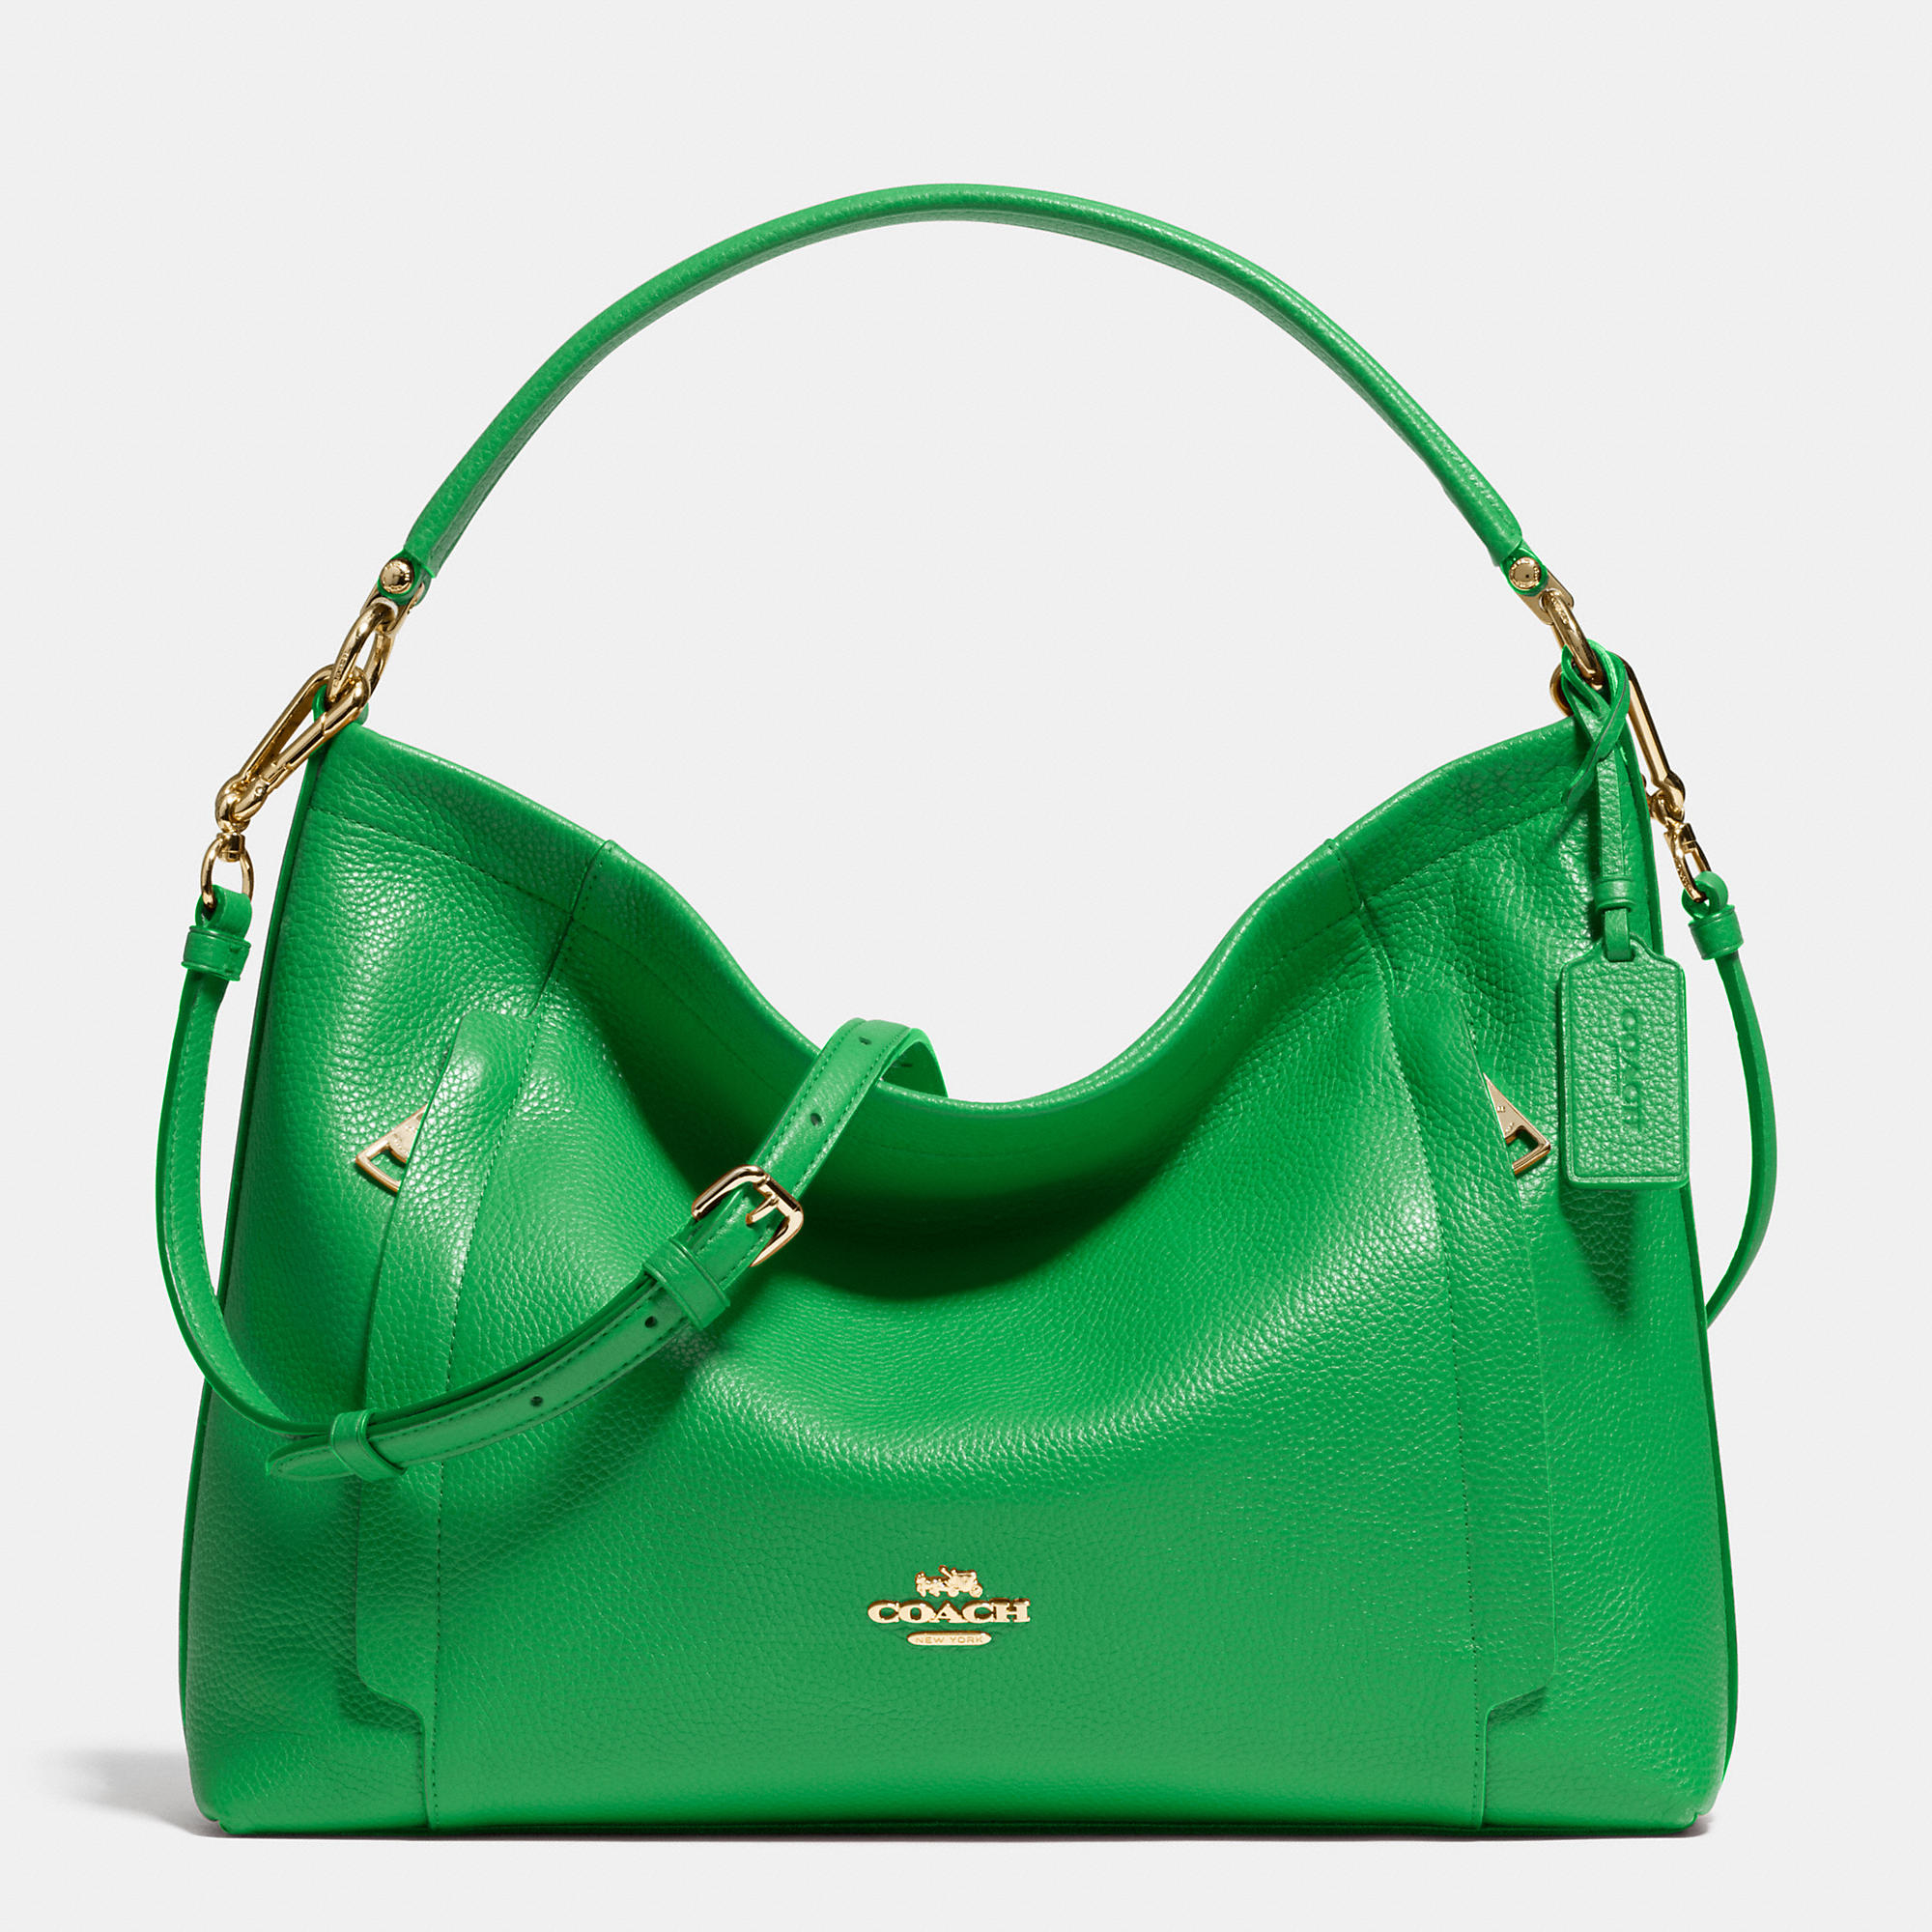 Coach Scout Hobo In Pebble Leather in Green | Lyst